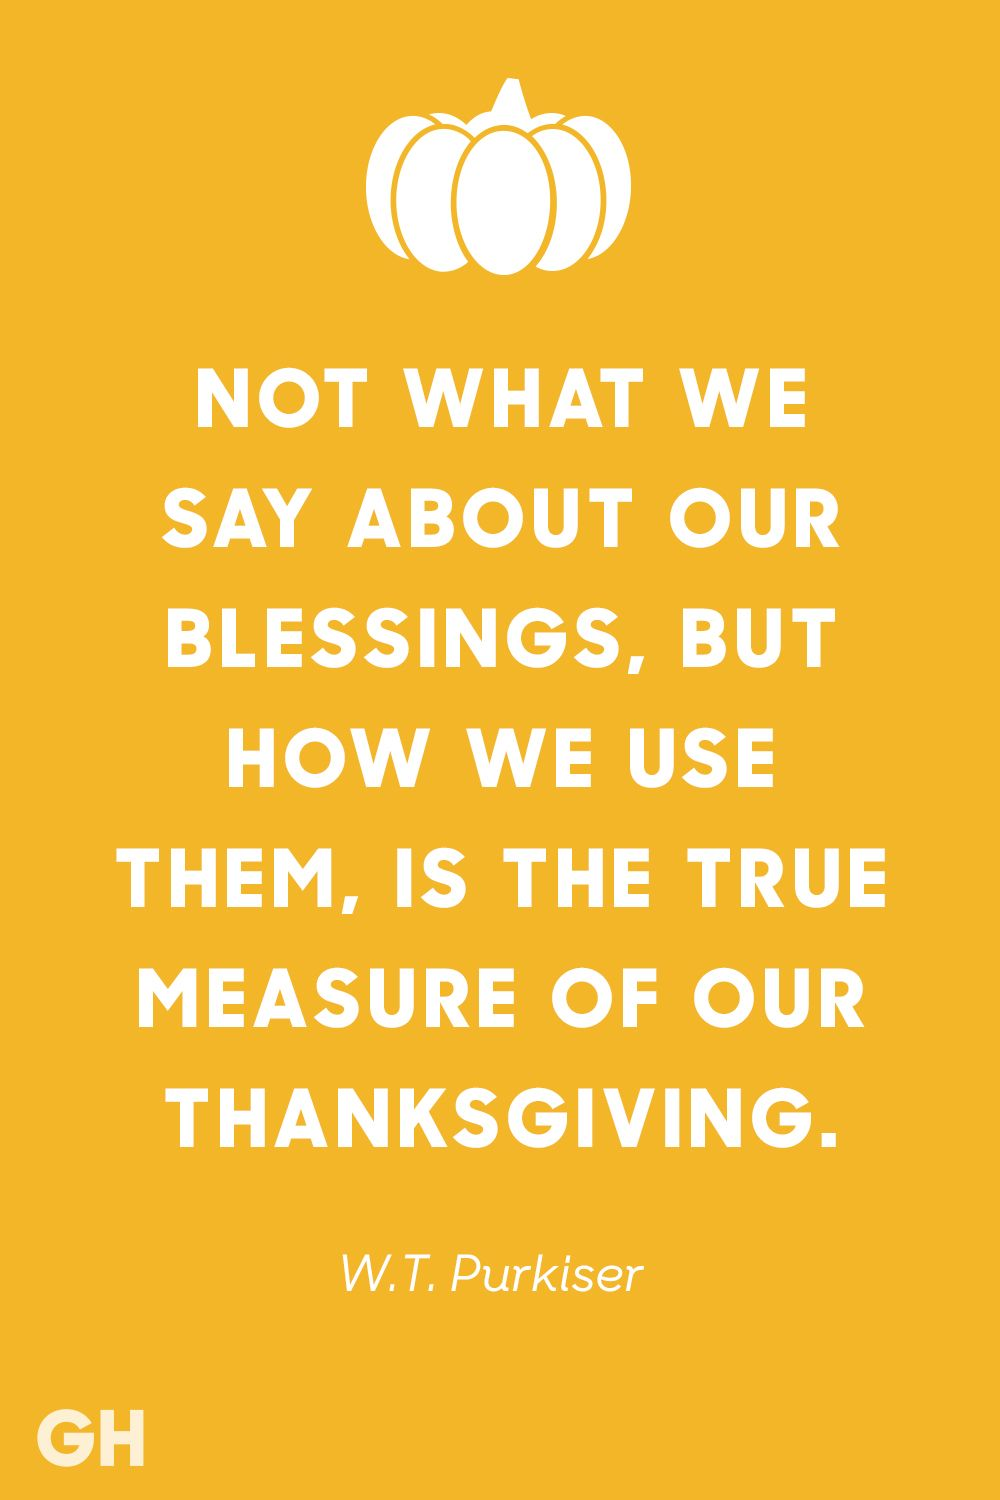 w. t. purkiser thanksgiving quote